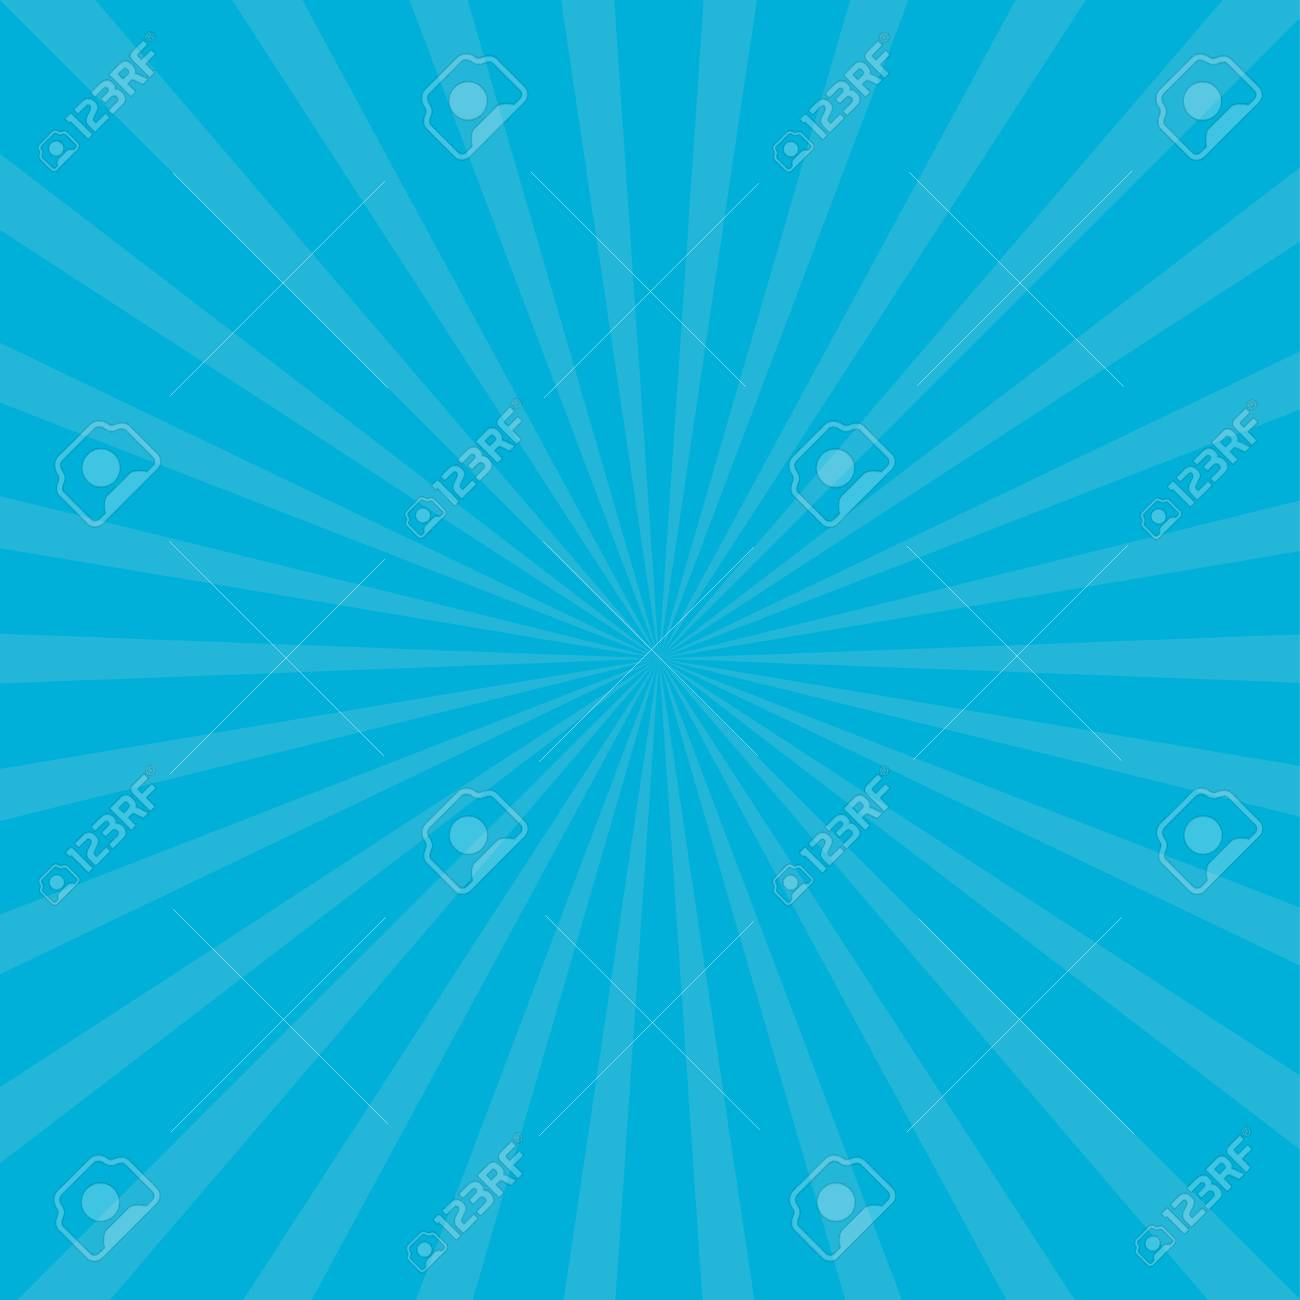 sunburst starburst with ray of light blue color template abstract background flat design